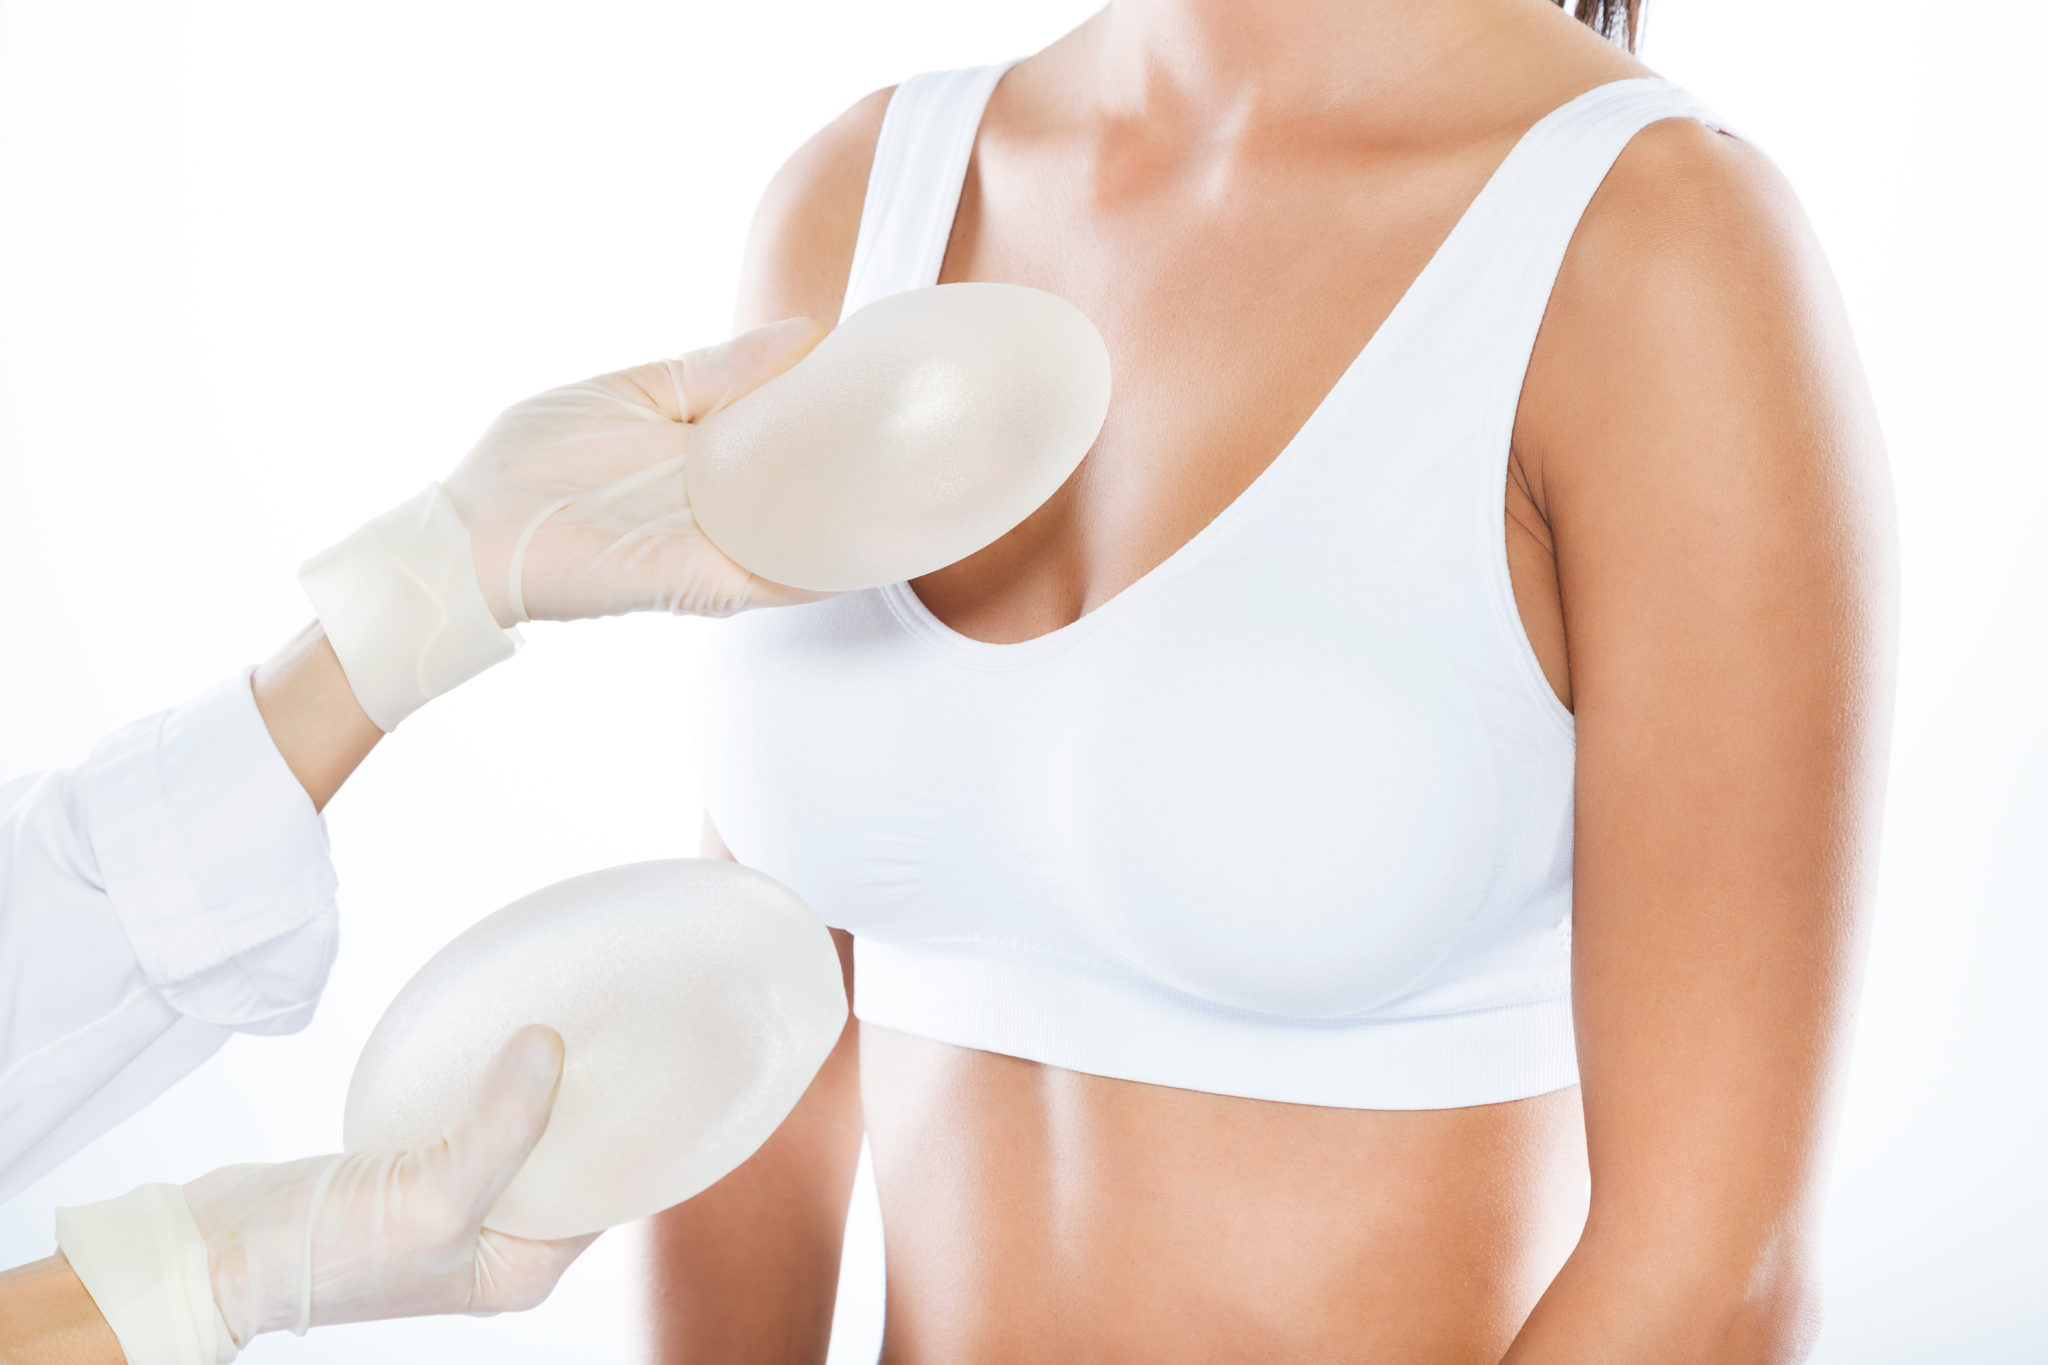 Breast Implants – Safety Update April 2019